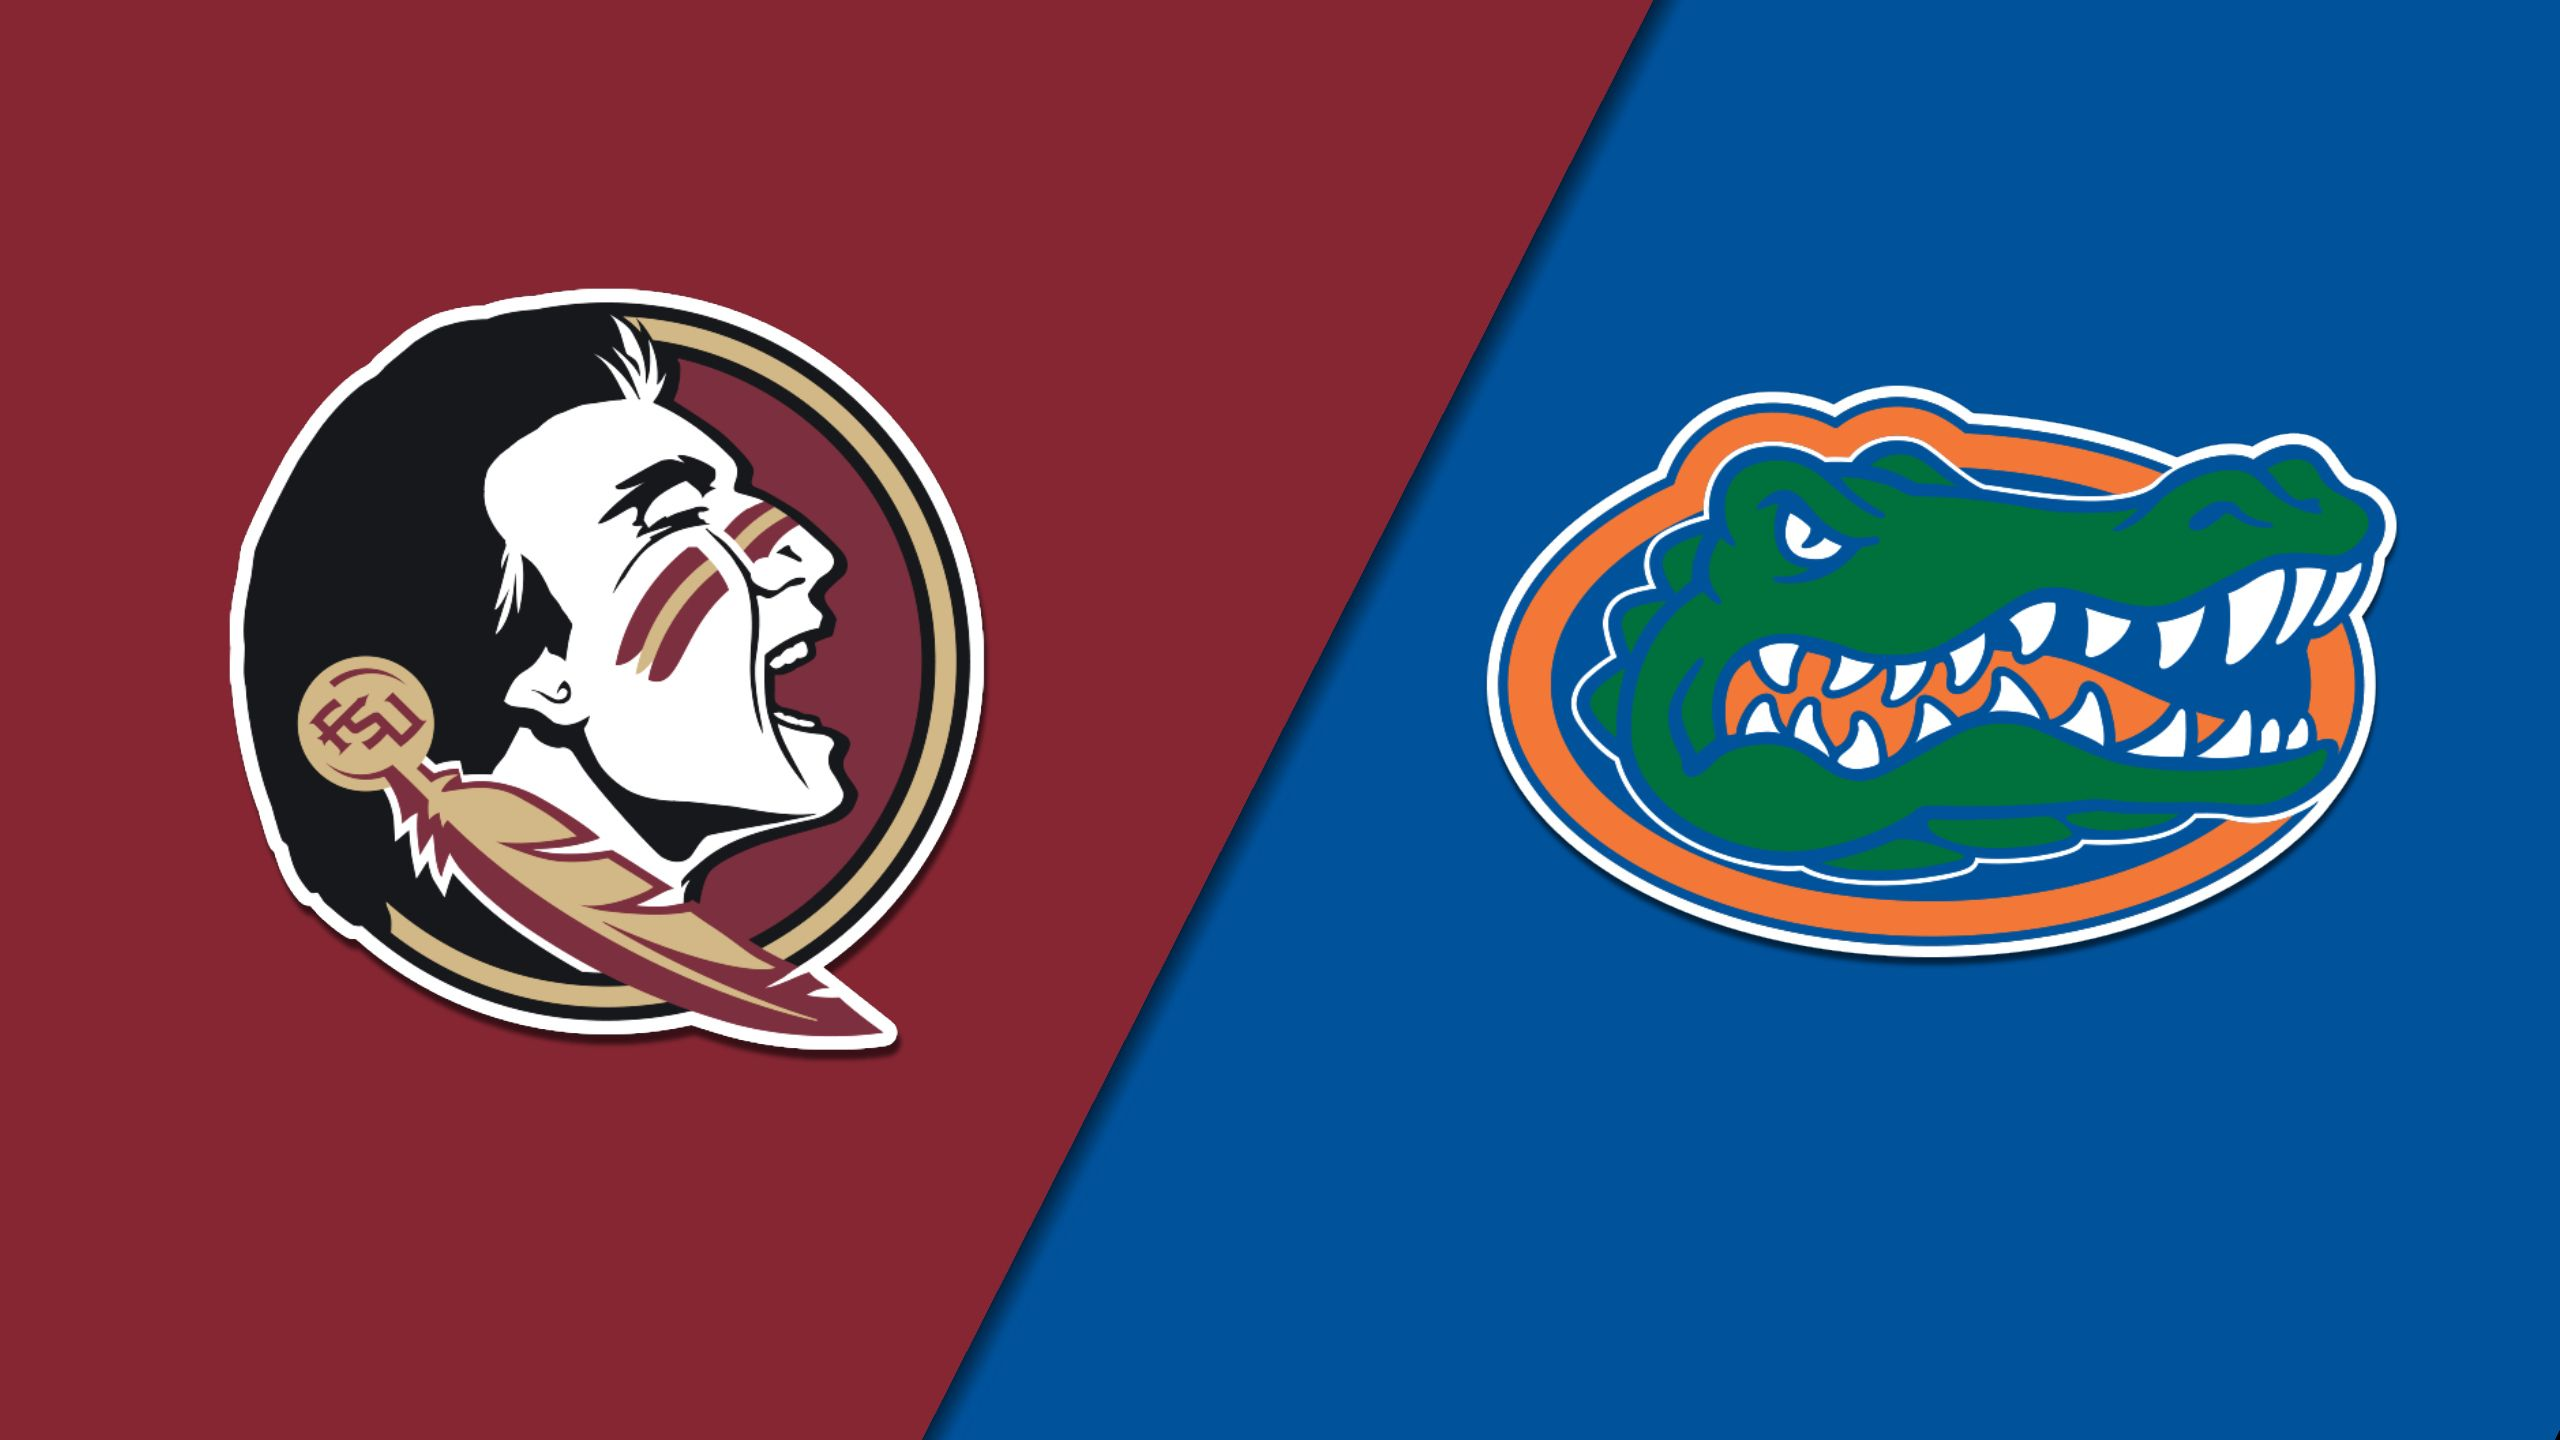 #5 Florida State vs. #2 Florida (Baseball)